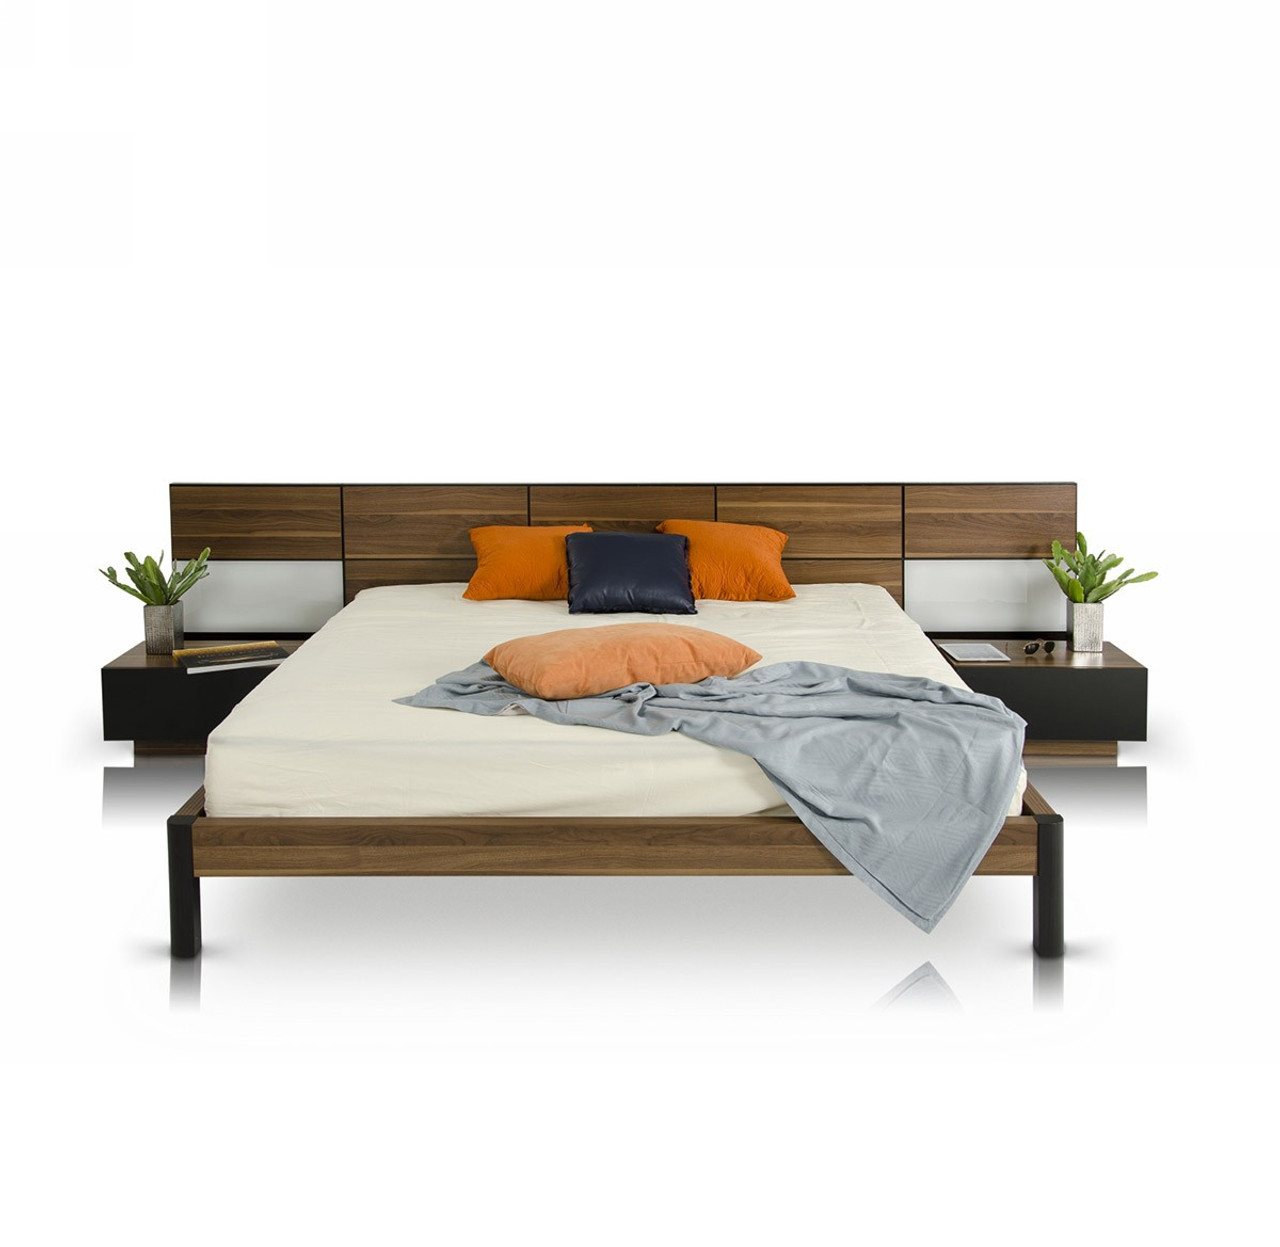 Modrest Rondo Modern King Size Bed With Nightstands Lounge La